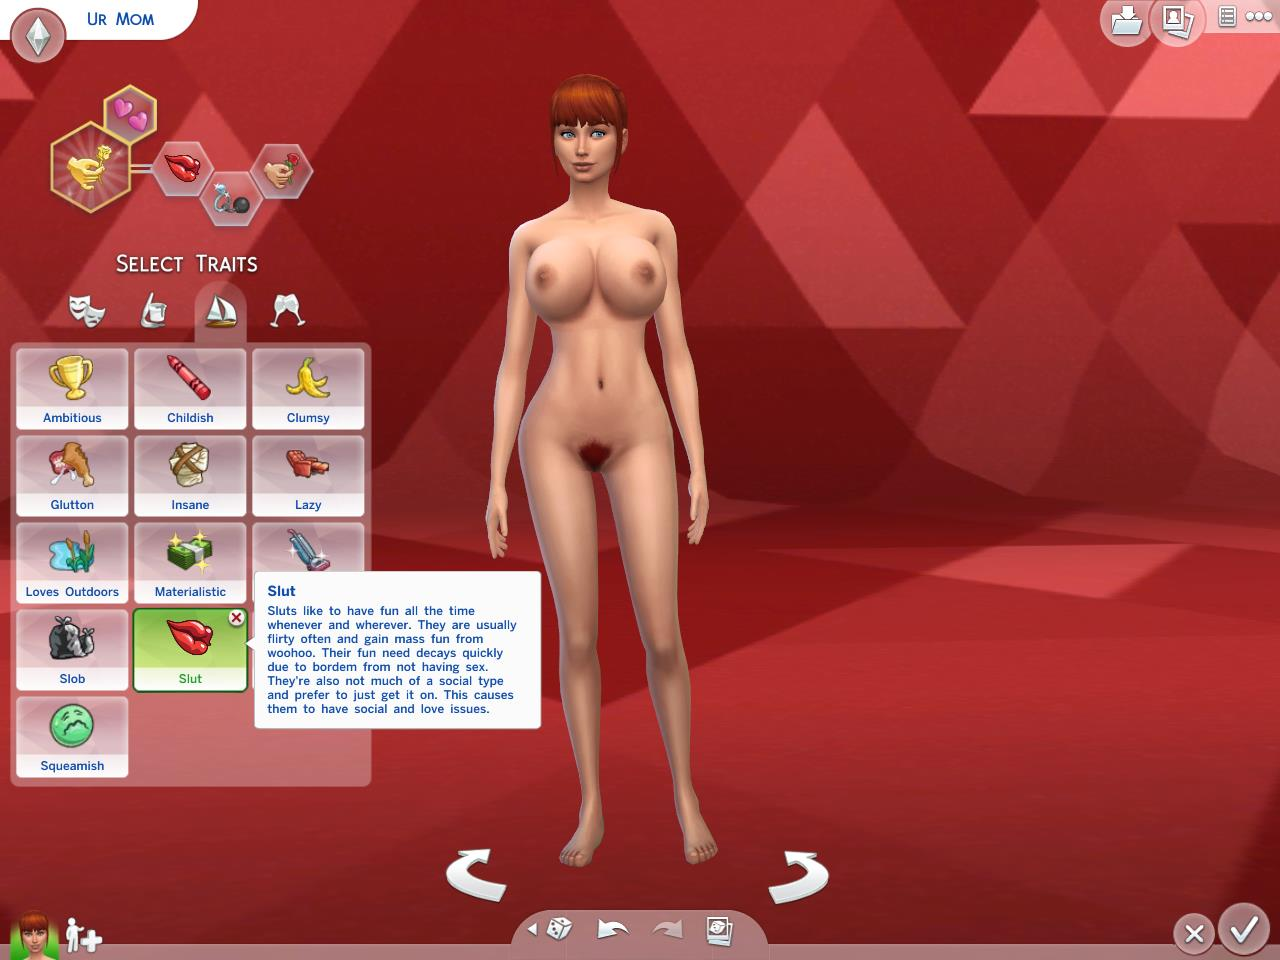 Sims 4 Sex Mods Archives  All sims 3 and sims 4 mods!